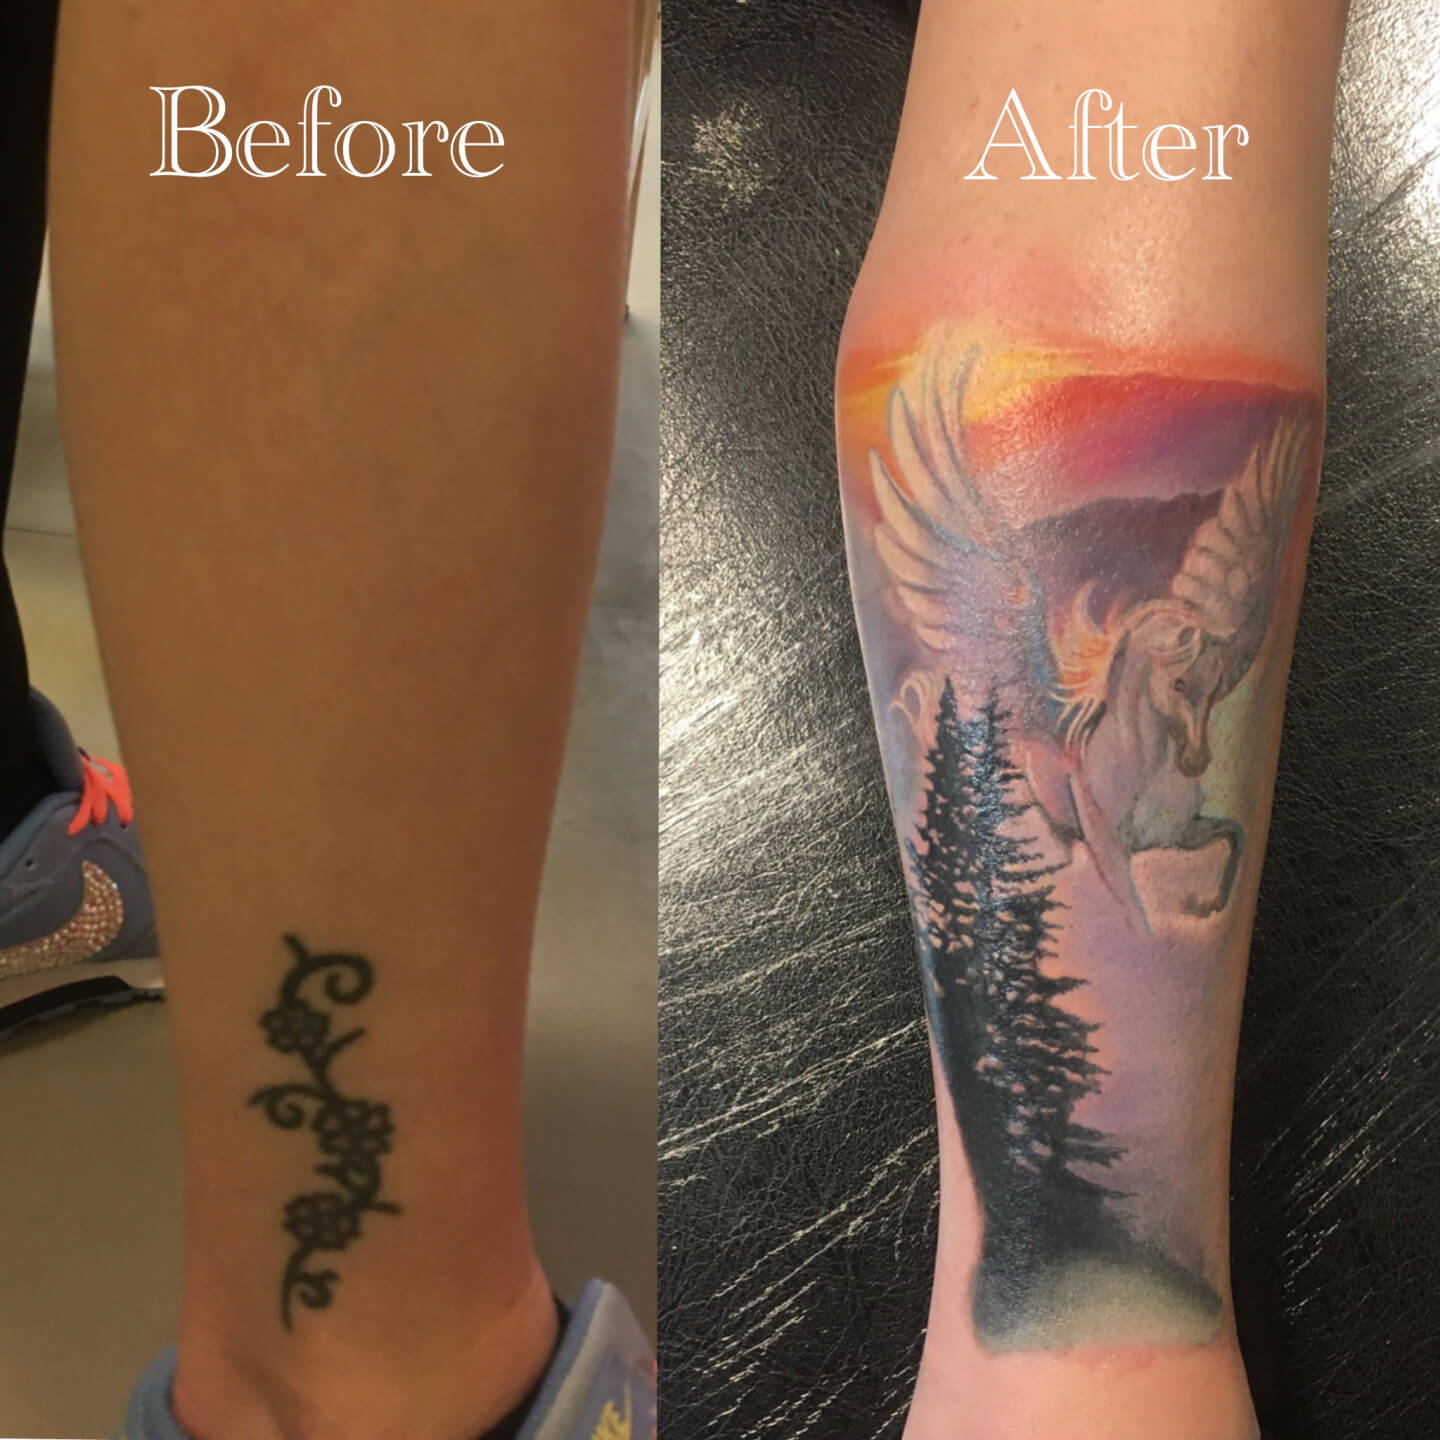 Cover Up Coverup Tattoo Ankle Peagsus Horse Landscape Sunset Trees Design Idea Ideas Tattooshop Assen Drenthe Blueroottattoo